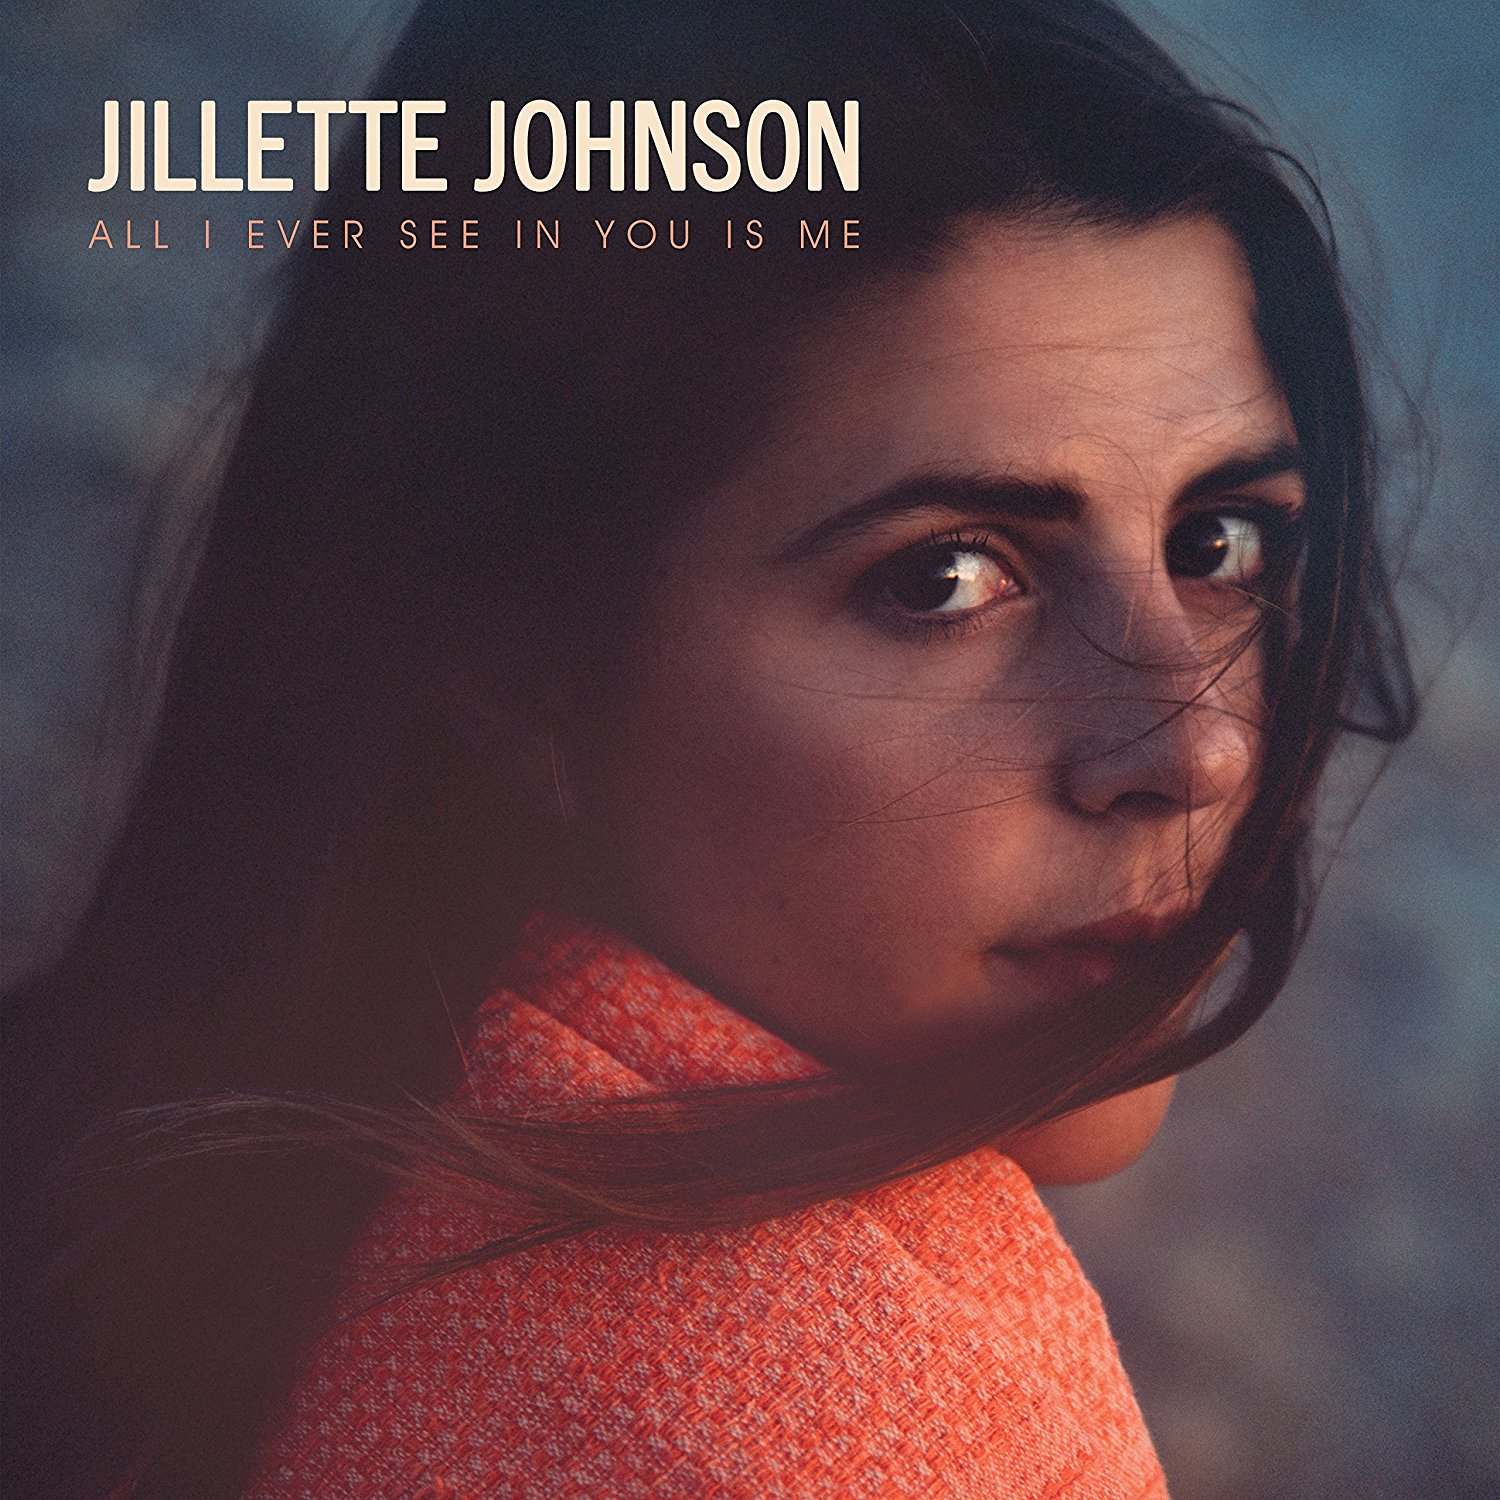 Jillette Johnson - All I Ever See In You Is Me [LP]